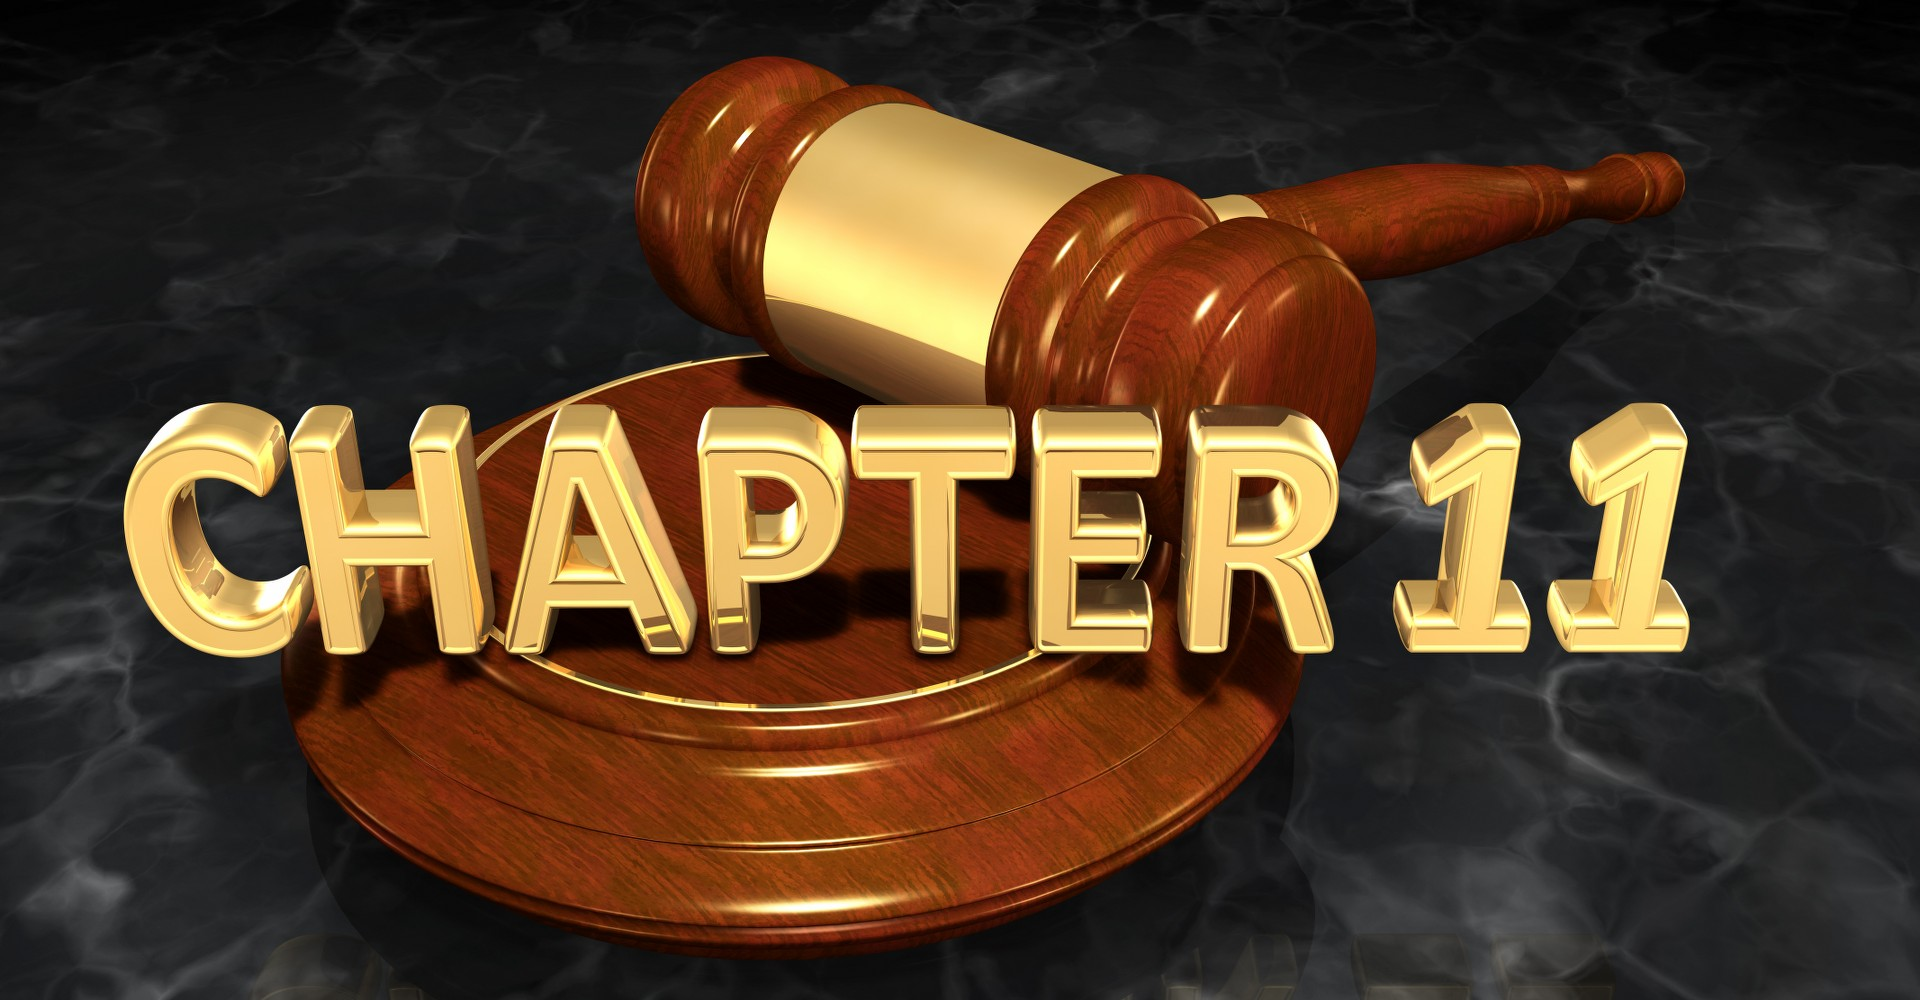 Chapter 11 Bankruptcy Attorney Miami, FL